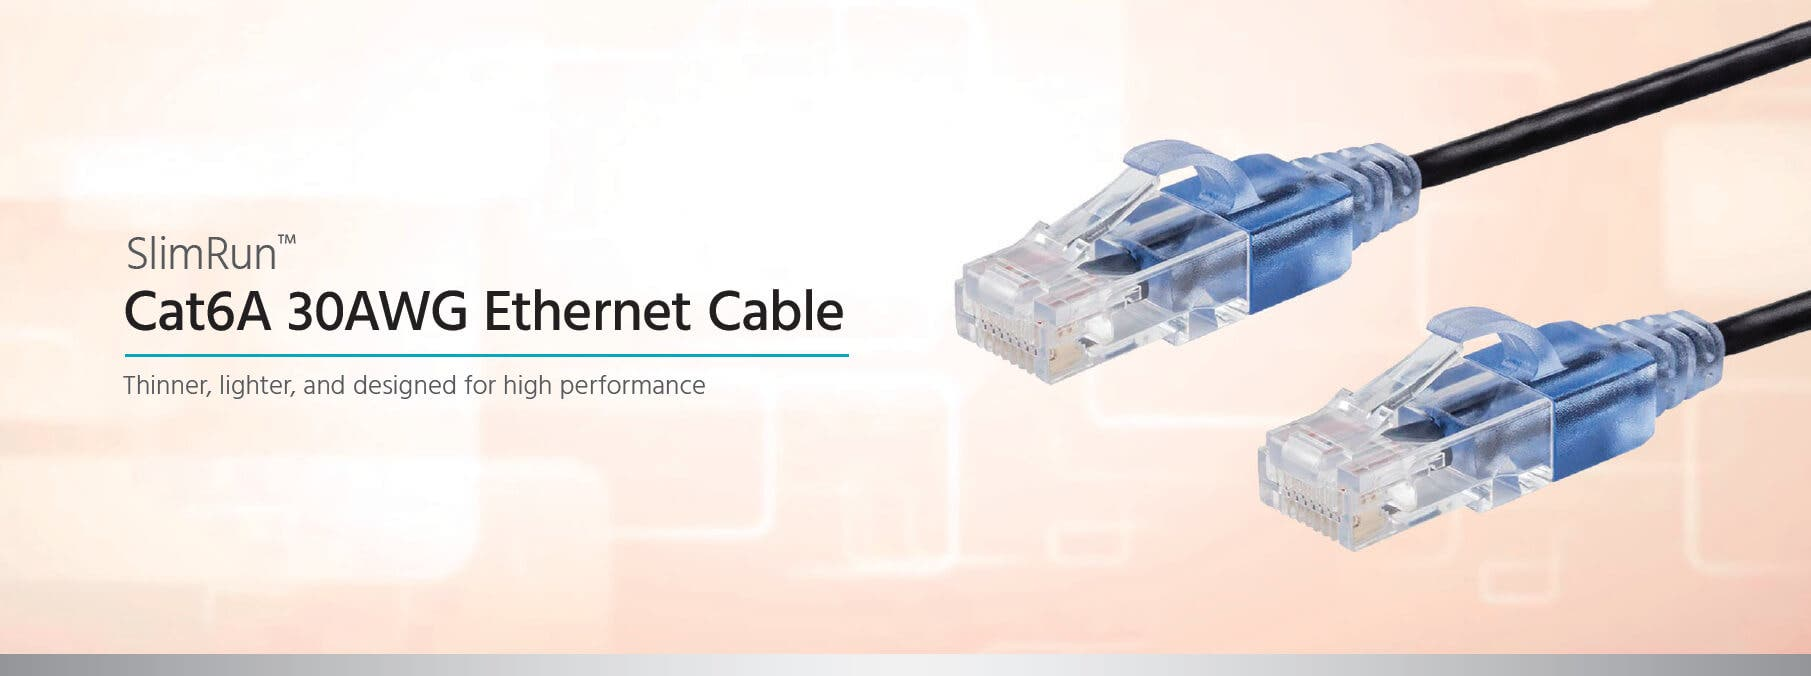 SlimRun Cat6A 30AWG Ethernet Cable